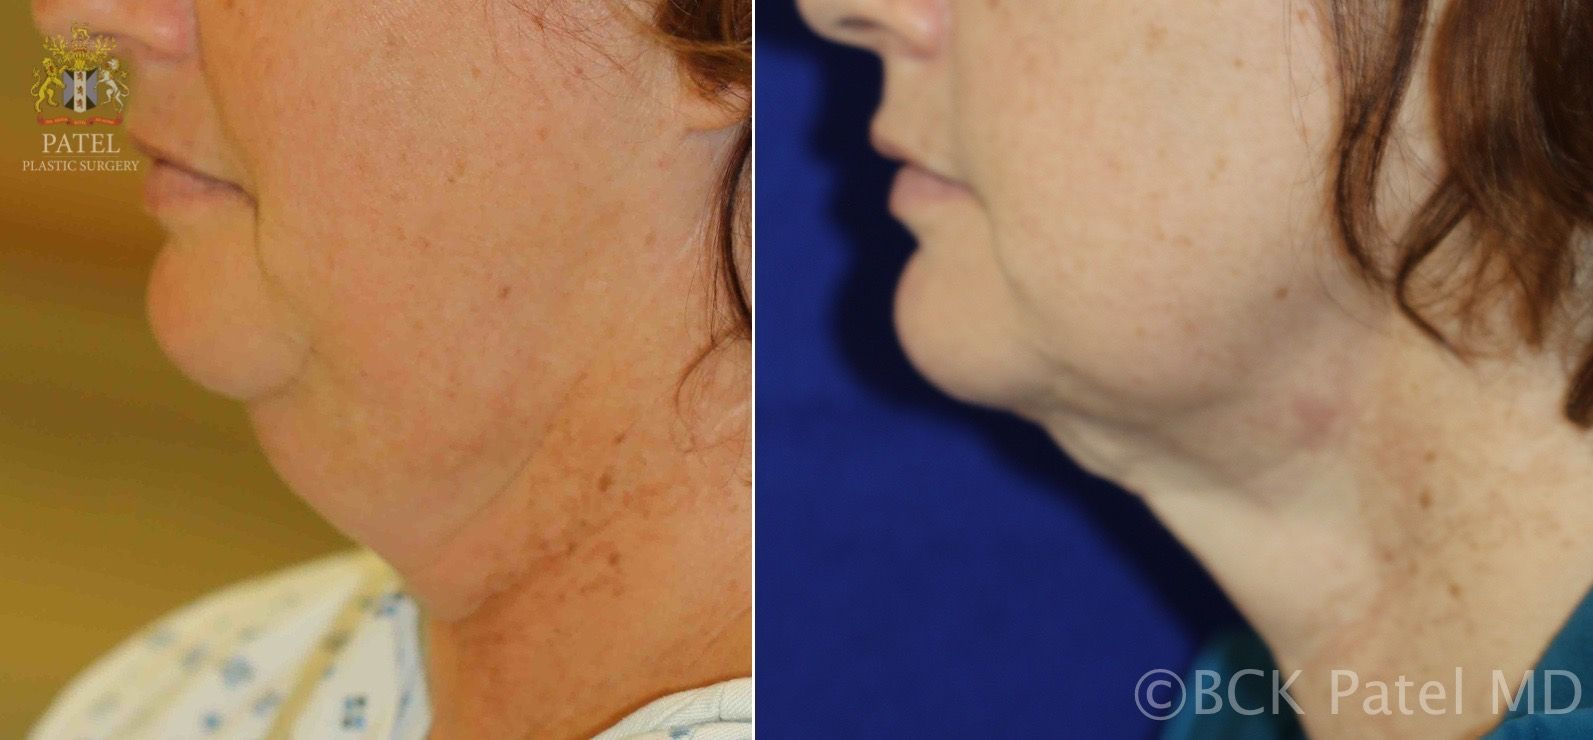 Before and after treatment of the fat neck by Dr. BCK Patel MD, FRCS of Salt Lake City, London, St George